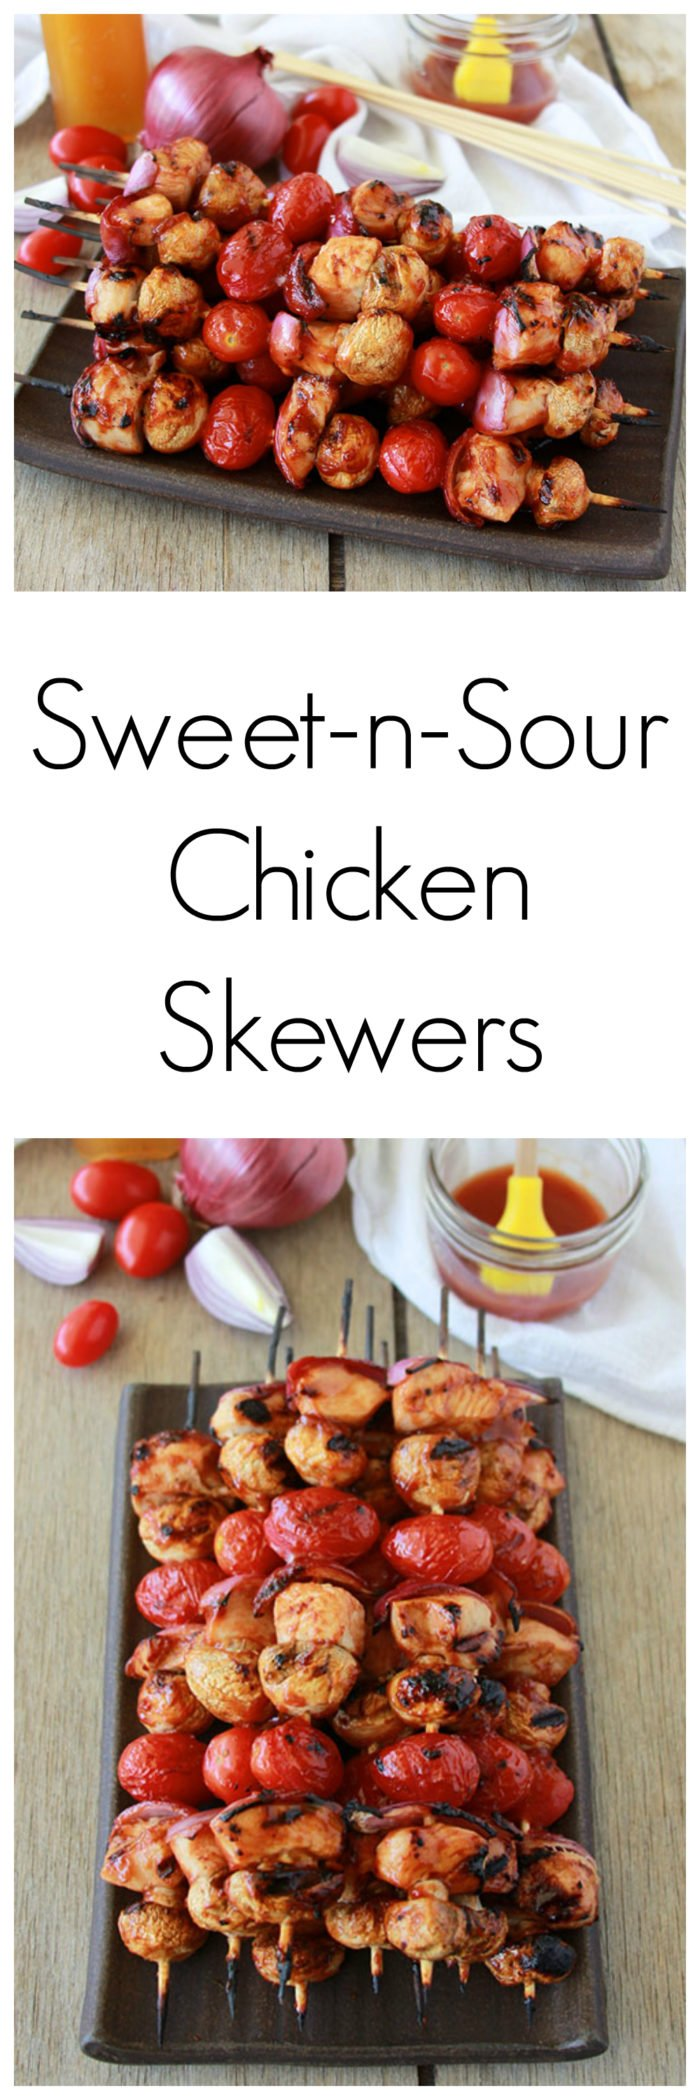 Sweet-n-Sour Chicken Skewers are simple to make and great for summer! www.cookingwithruthie.com